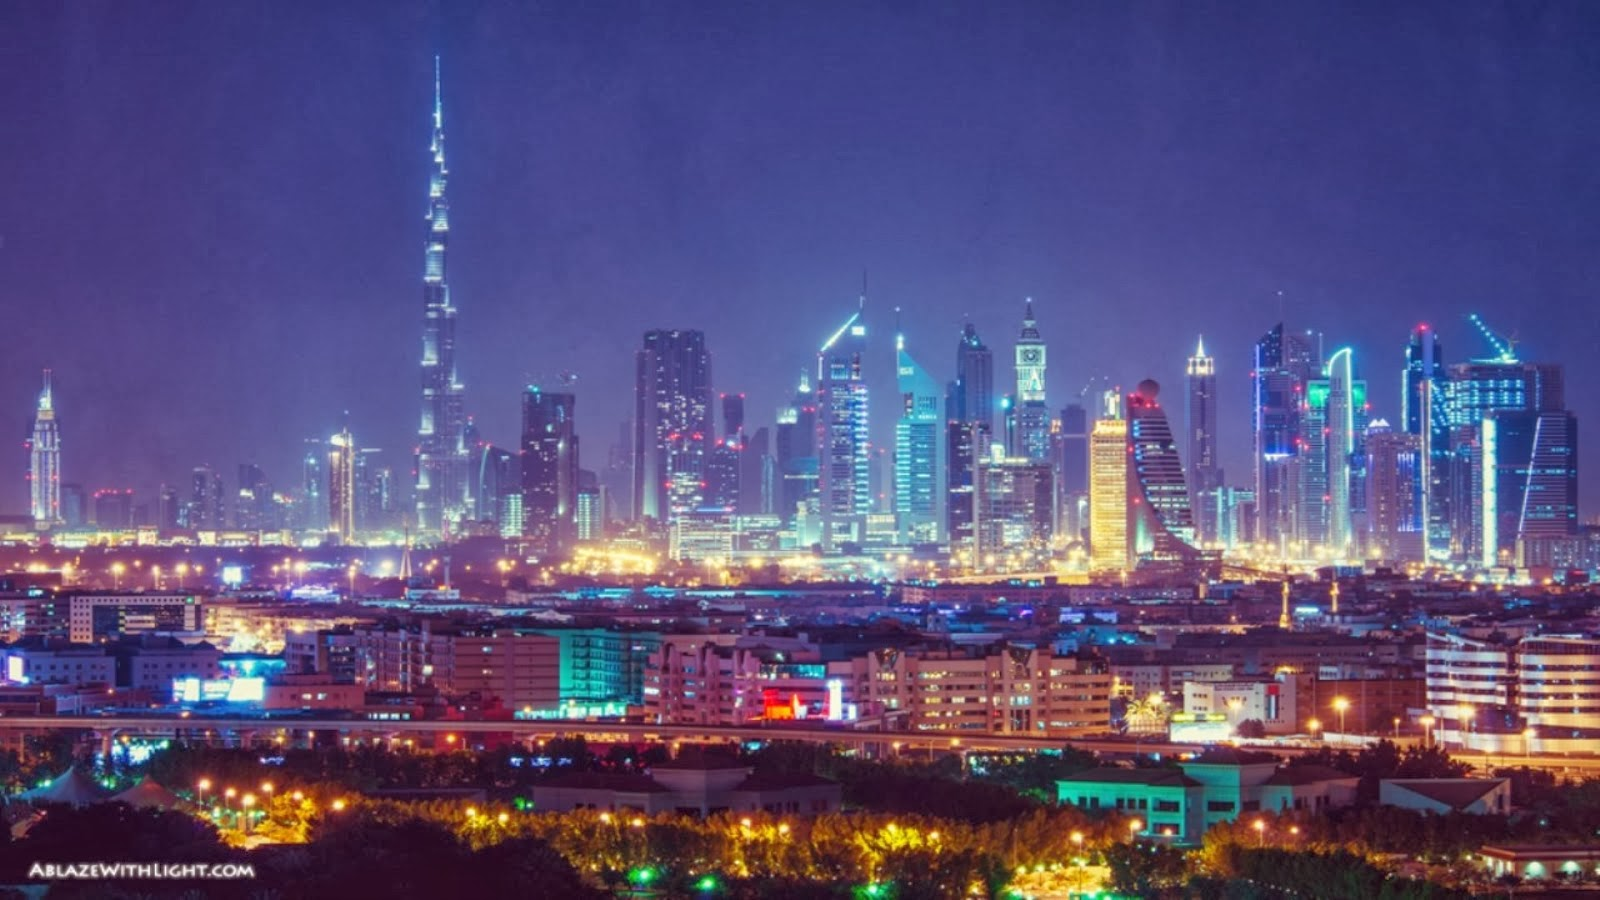 Fantastic Wallpaper Night Dubai - Dubai+City+at+night+HD+Wallpapers+Download+(1920+x+1080)  Graphic-38620.jpg